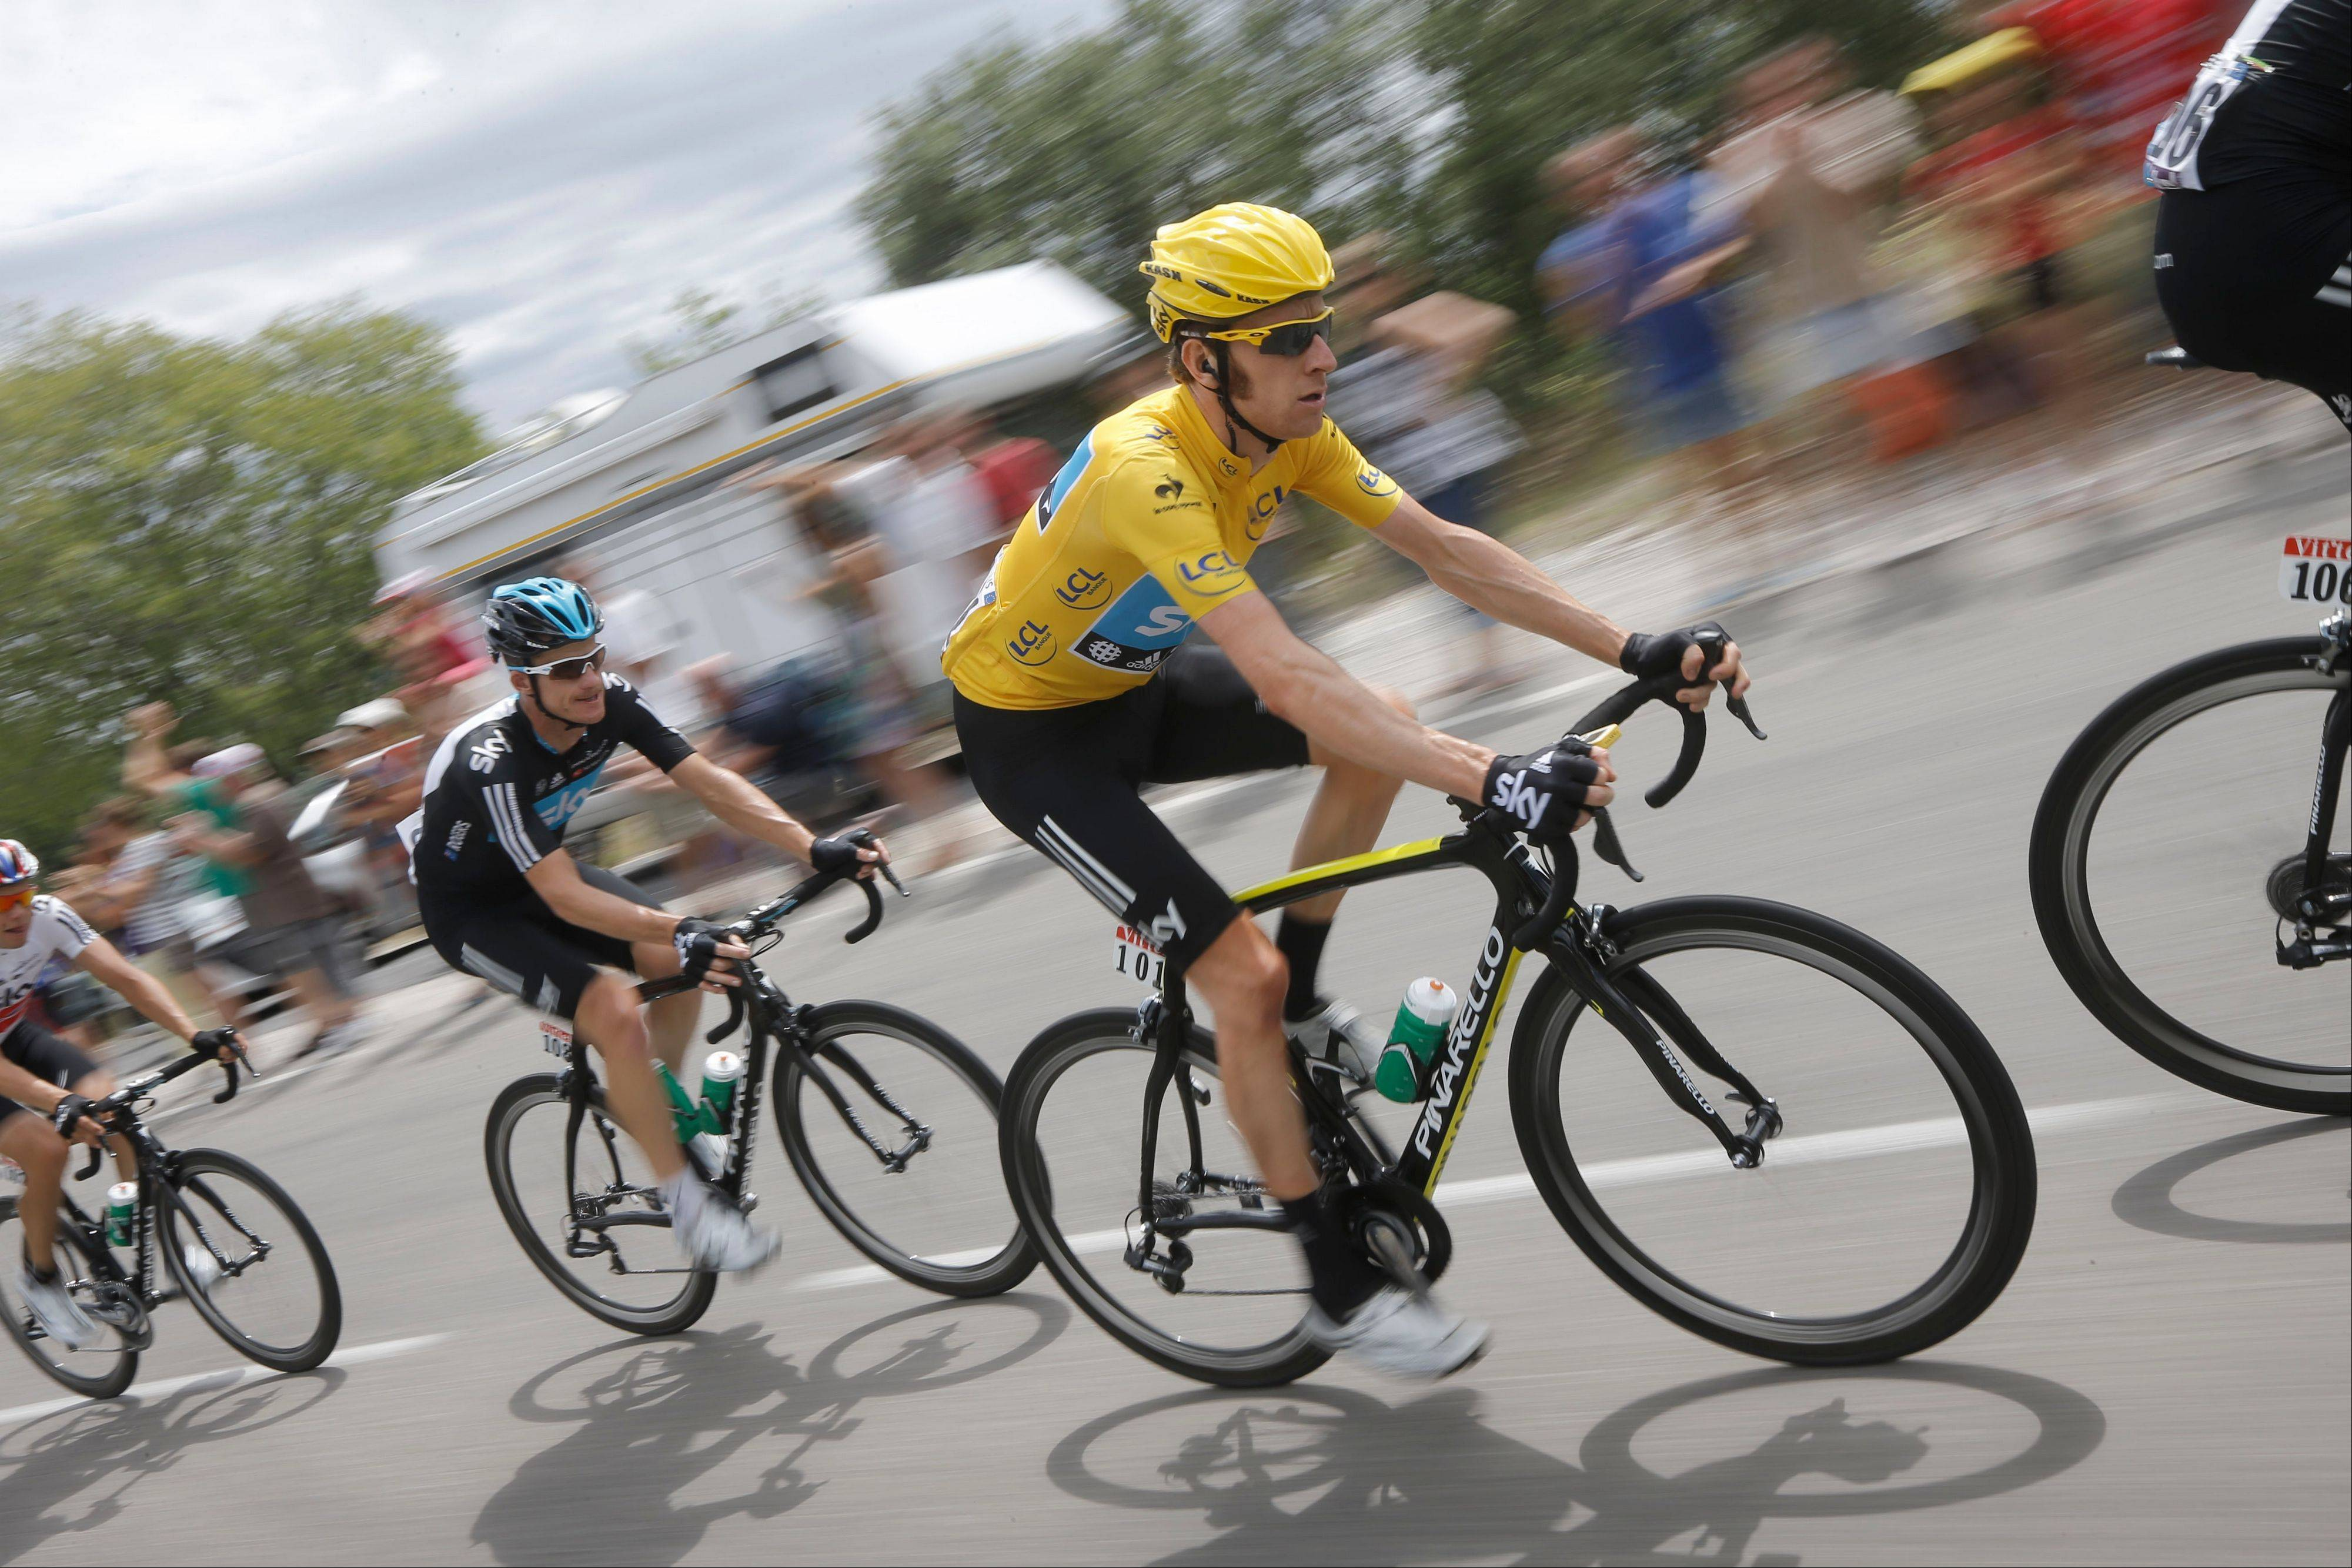 Bradley Wiggins, wearing the overall leader's yellow jersey, rides in the pack Saturday during the 13th stage of the Tour de France.